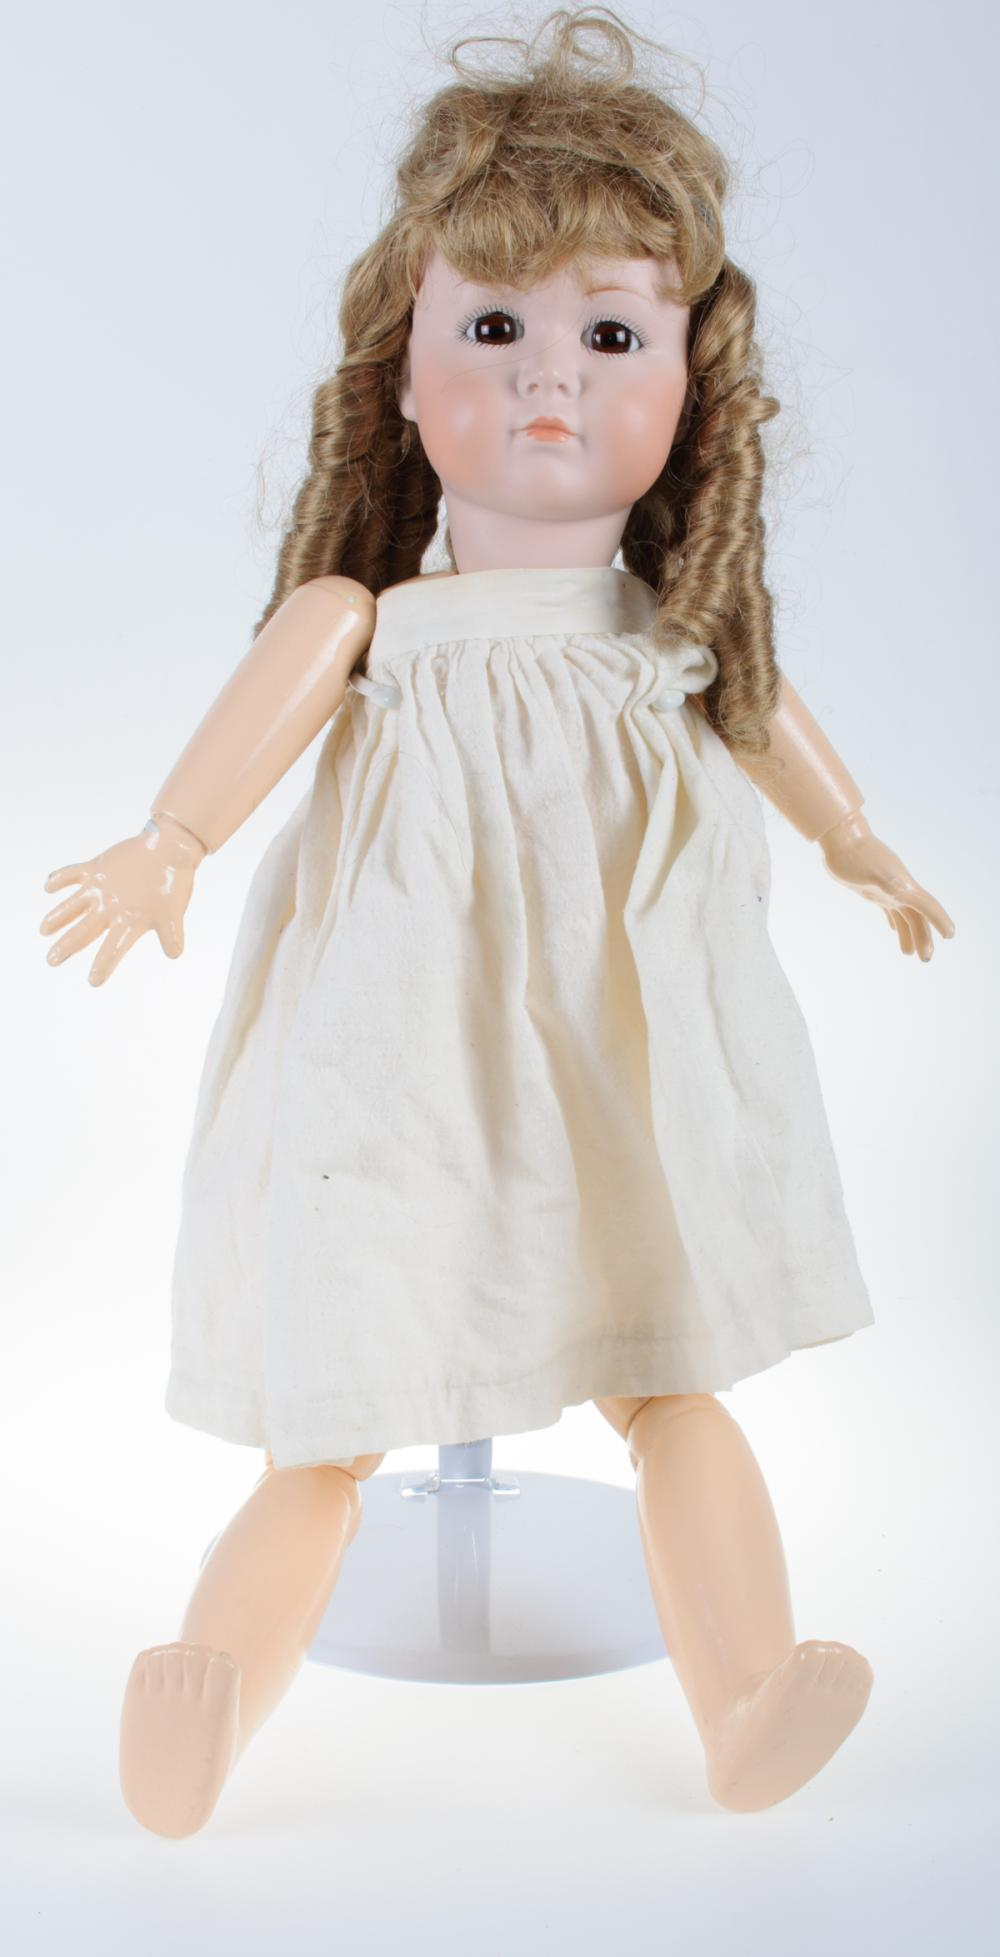 Simon & Halbig Reproduction Doll